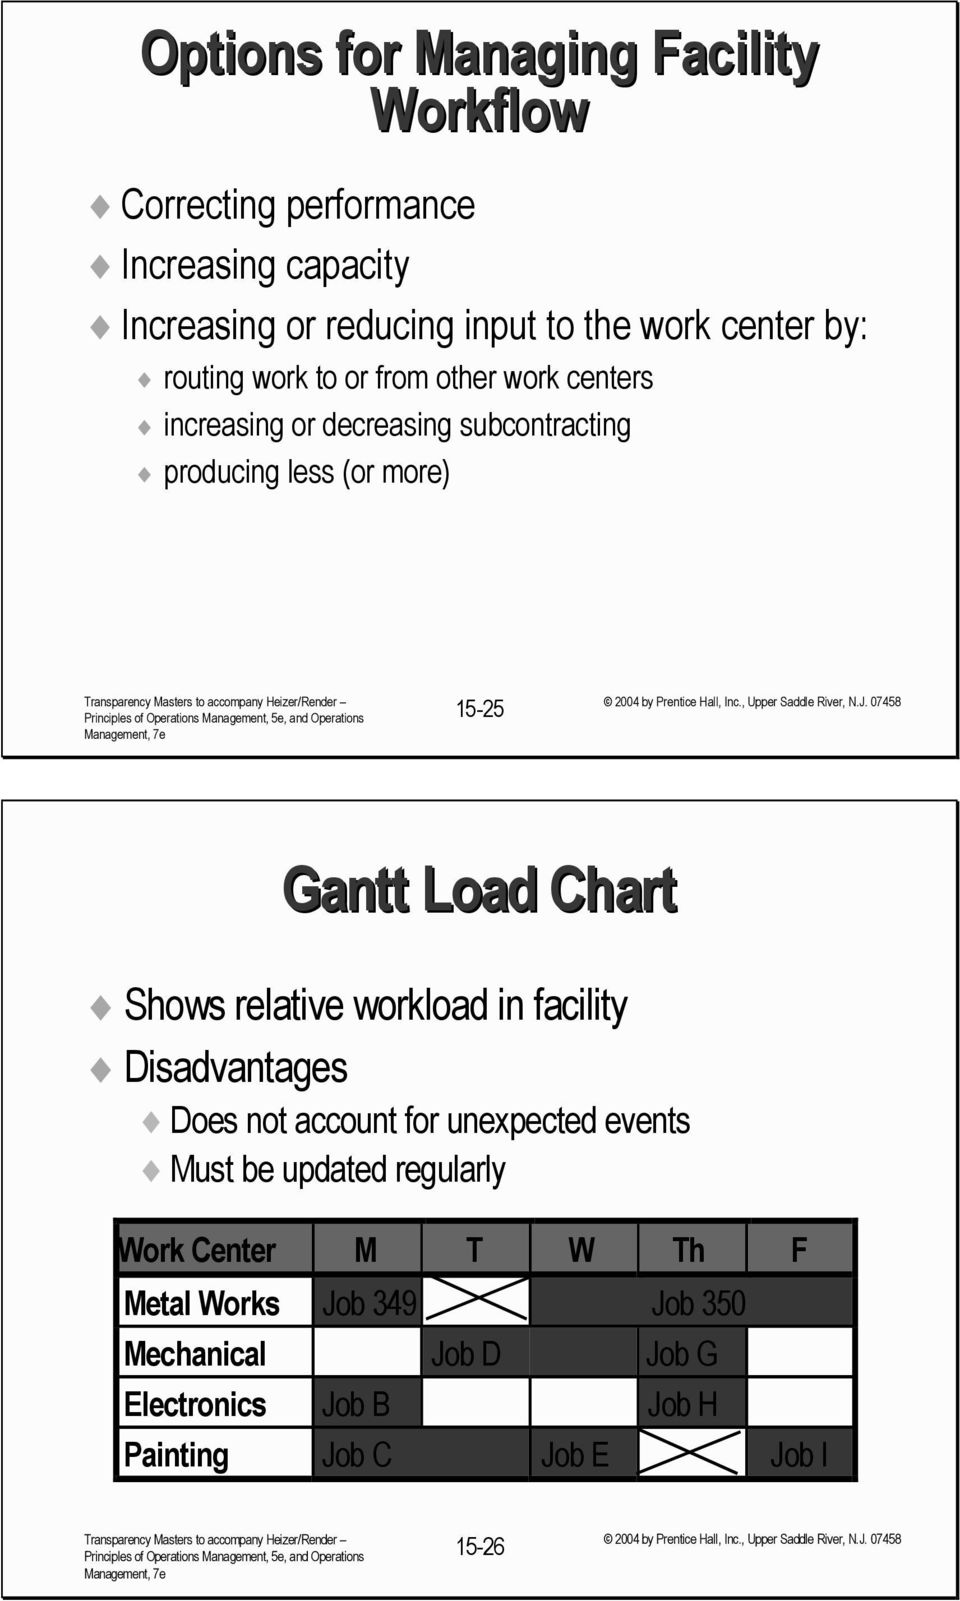 Gantt Load Chart Shows relative workload in facility Disadvantages Does not account for unexpected events Must be updated